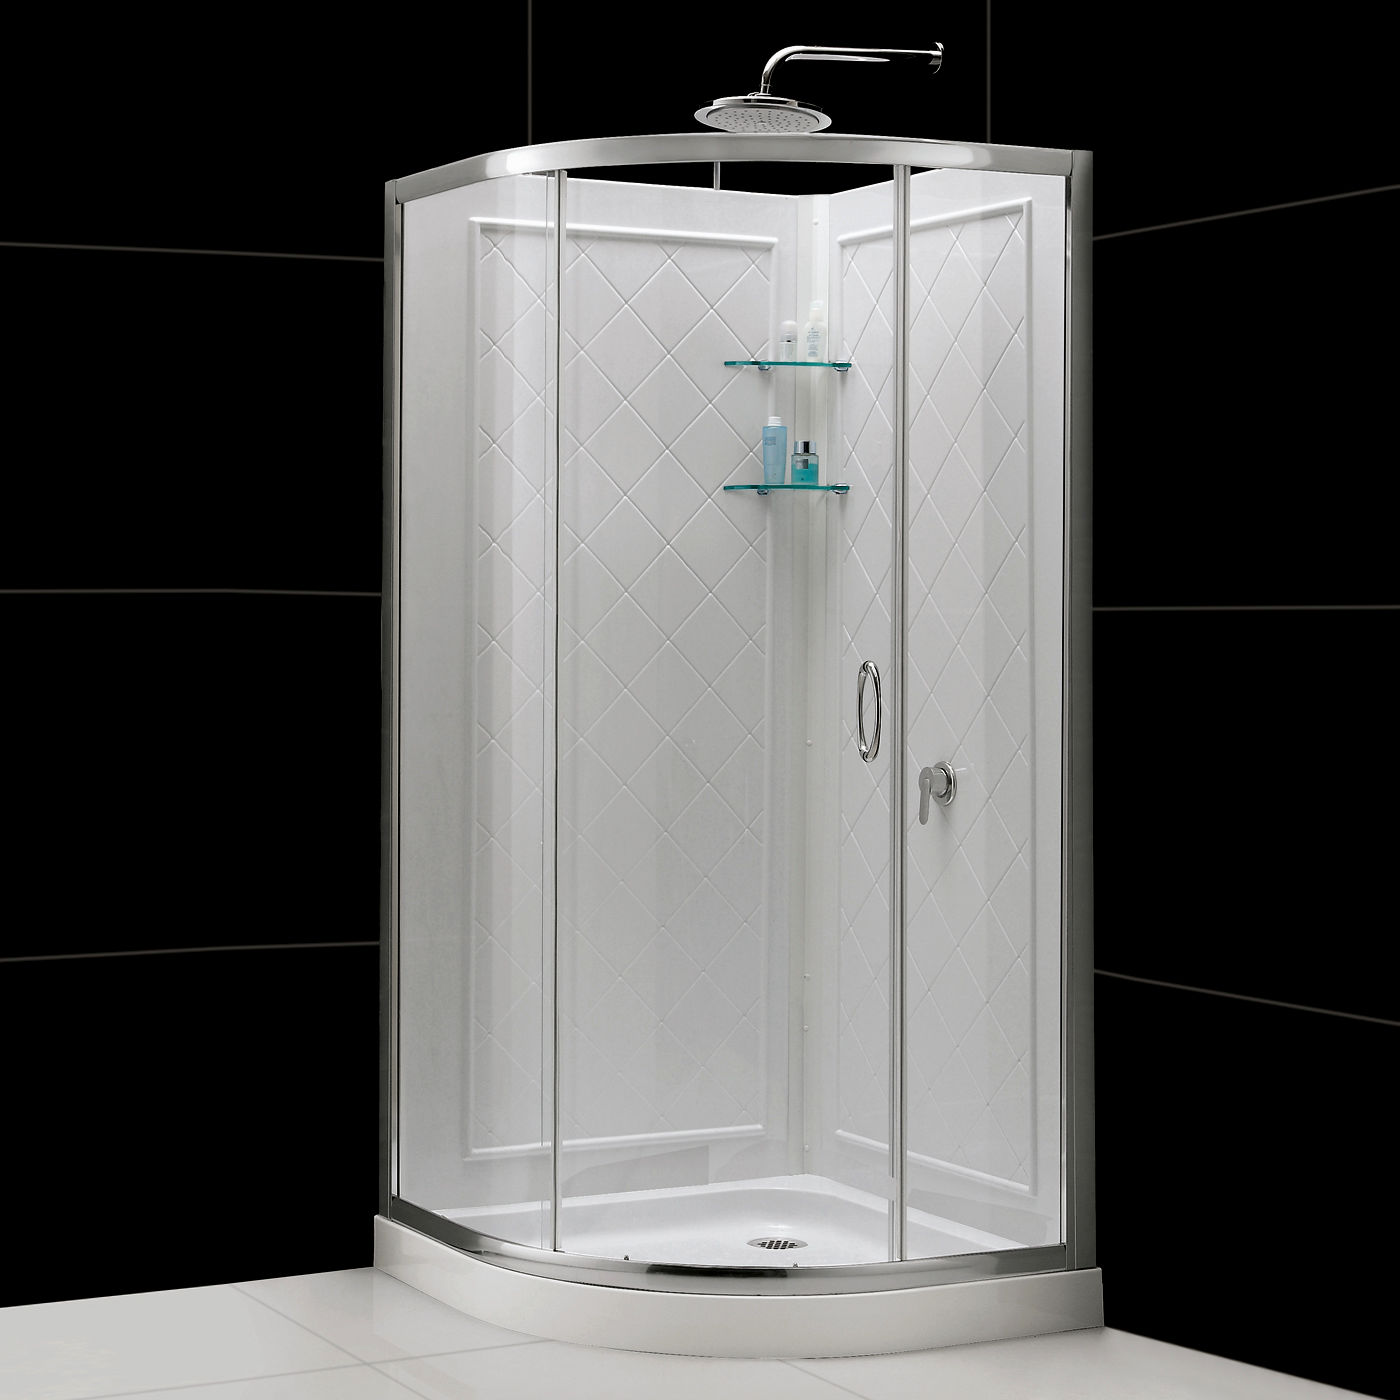 sensational bathroom wall cabinets concept-Best Of Bathroom Wall Cabinets Model